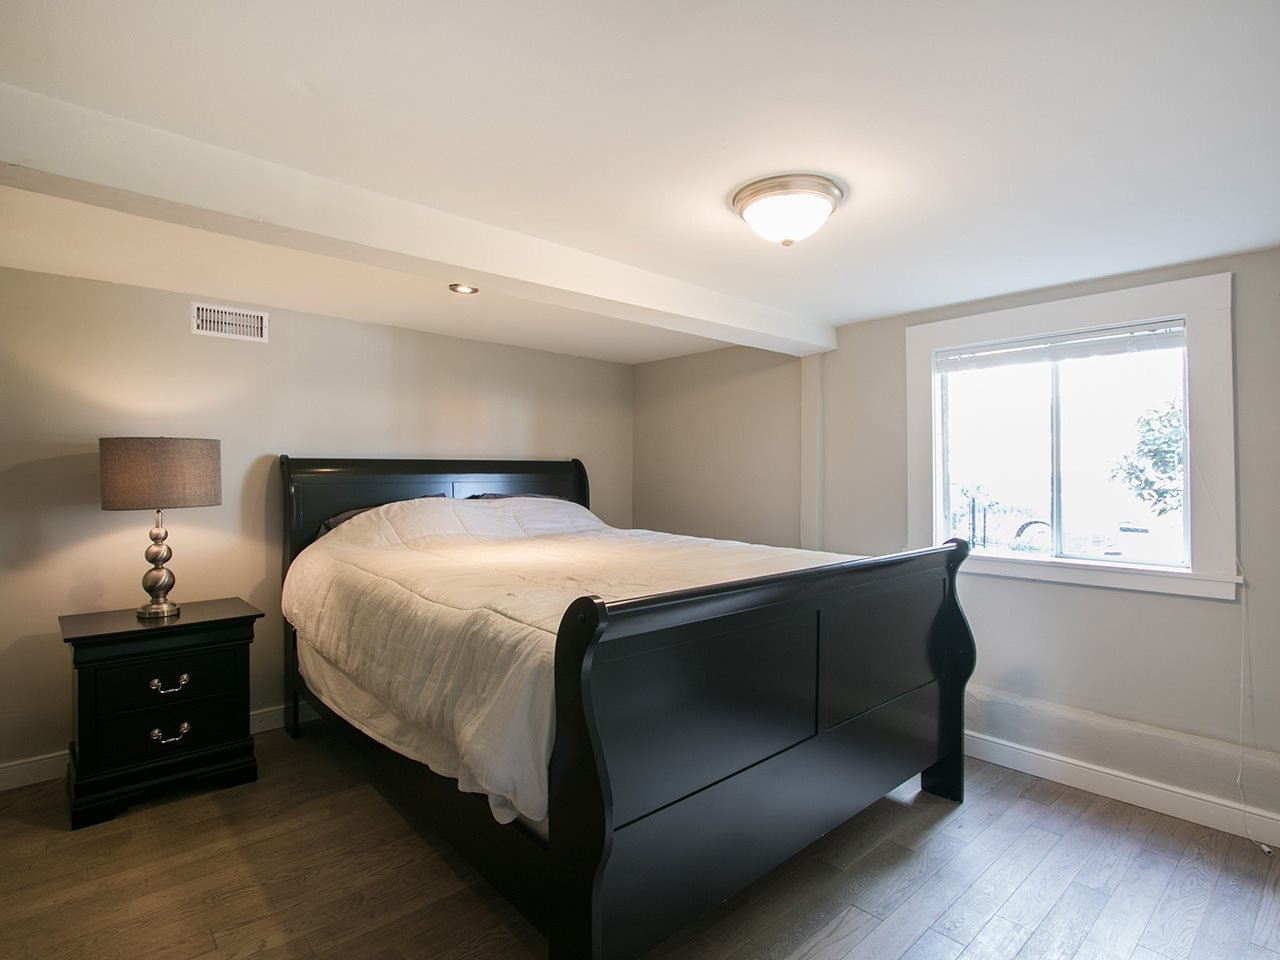 Photo 18: Photos: 158 E 26TH Avenue in Vancouver: Main House for sale (Vancouver East)  : MLS®# R2042714